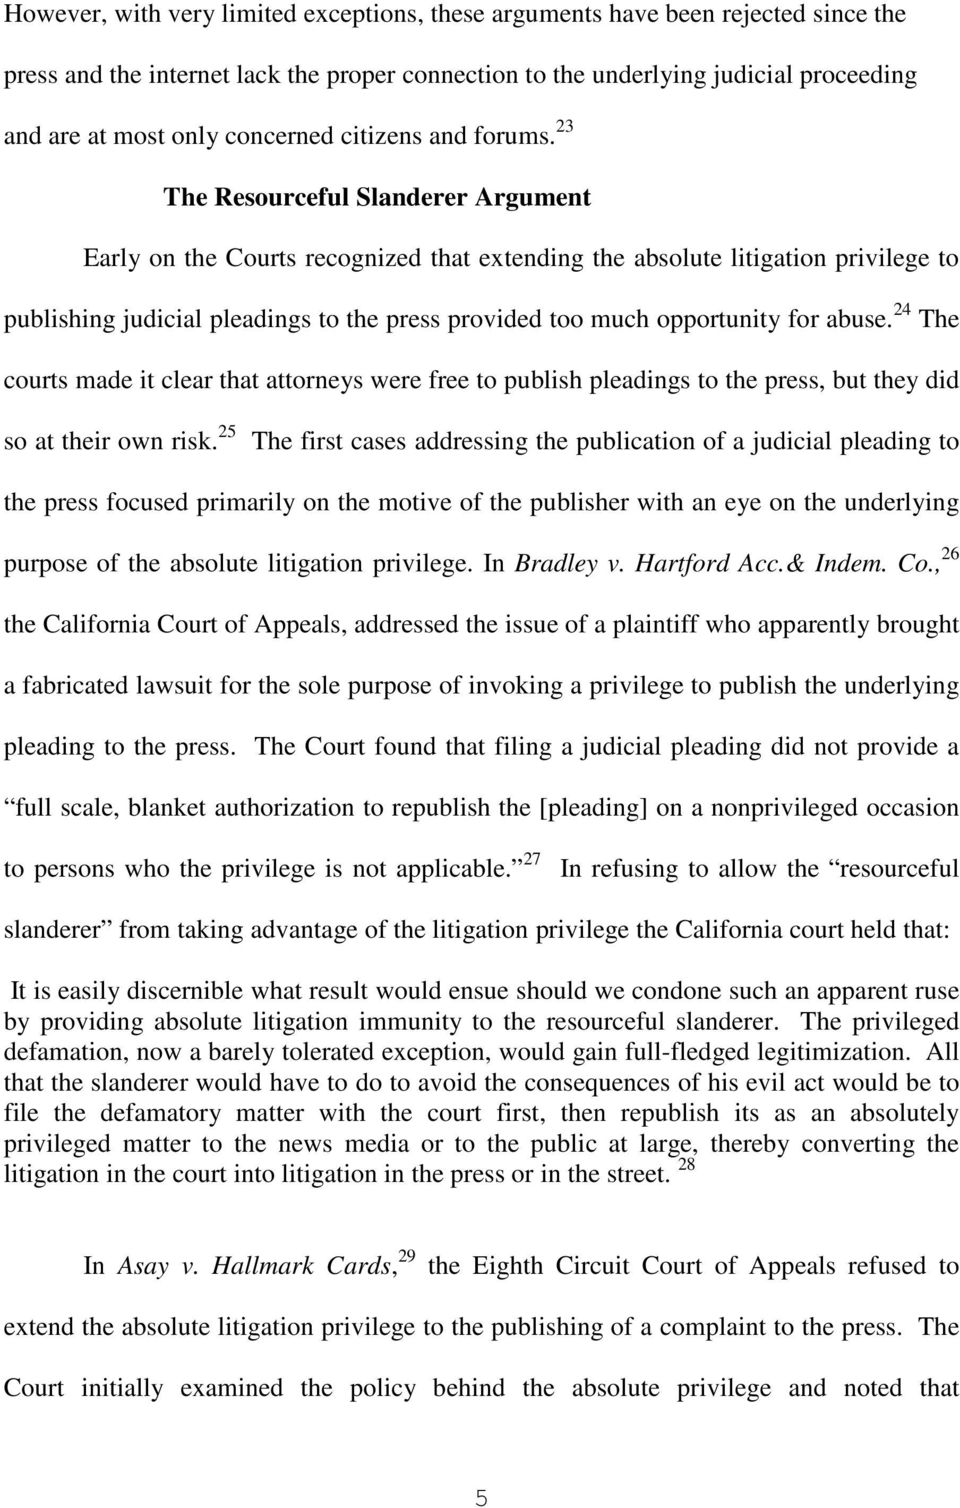 23 The Resourceful Slanderer Argument Early on the Courts recognized that extending the absolute litigation privilege to publishing judicial pleadings to the press provided too much opportunity for